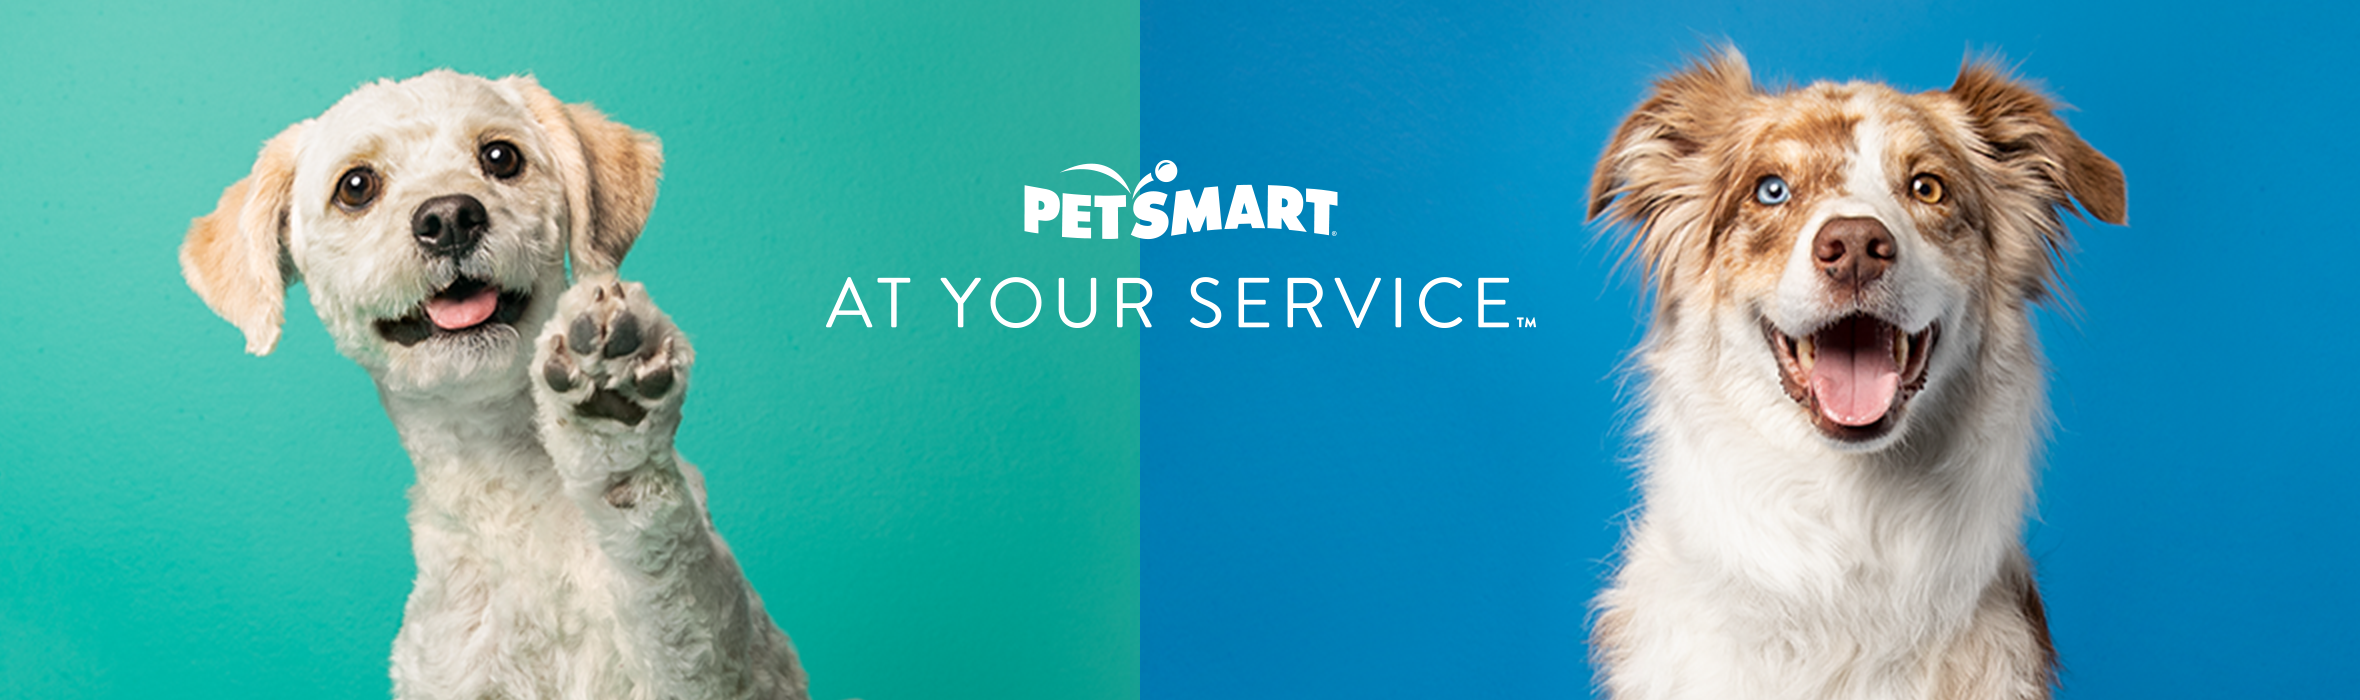 Petsmart Christmas Eve Hours.Pet Services For Dogs Cats Grooming Boarding More Petsmart